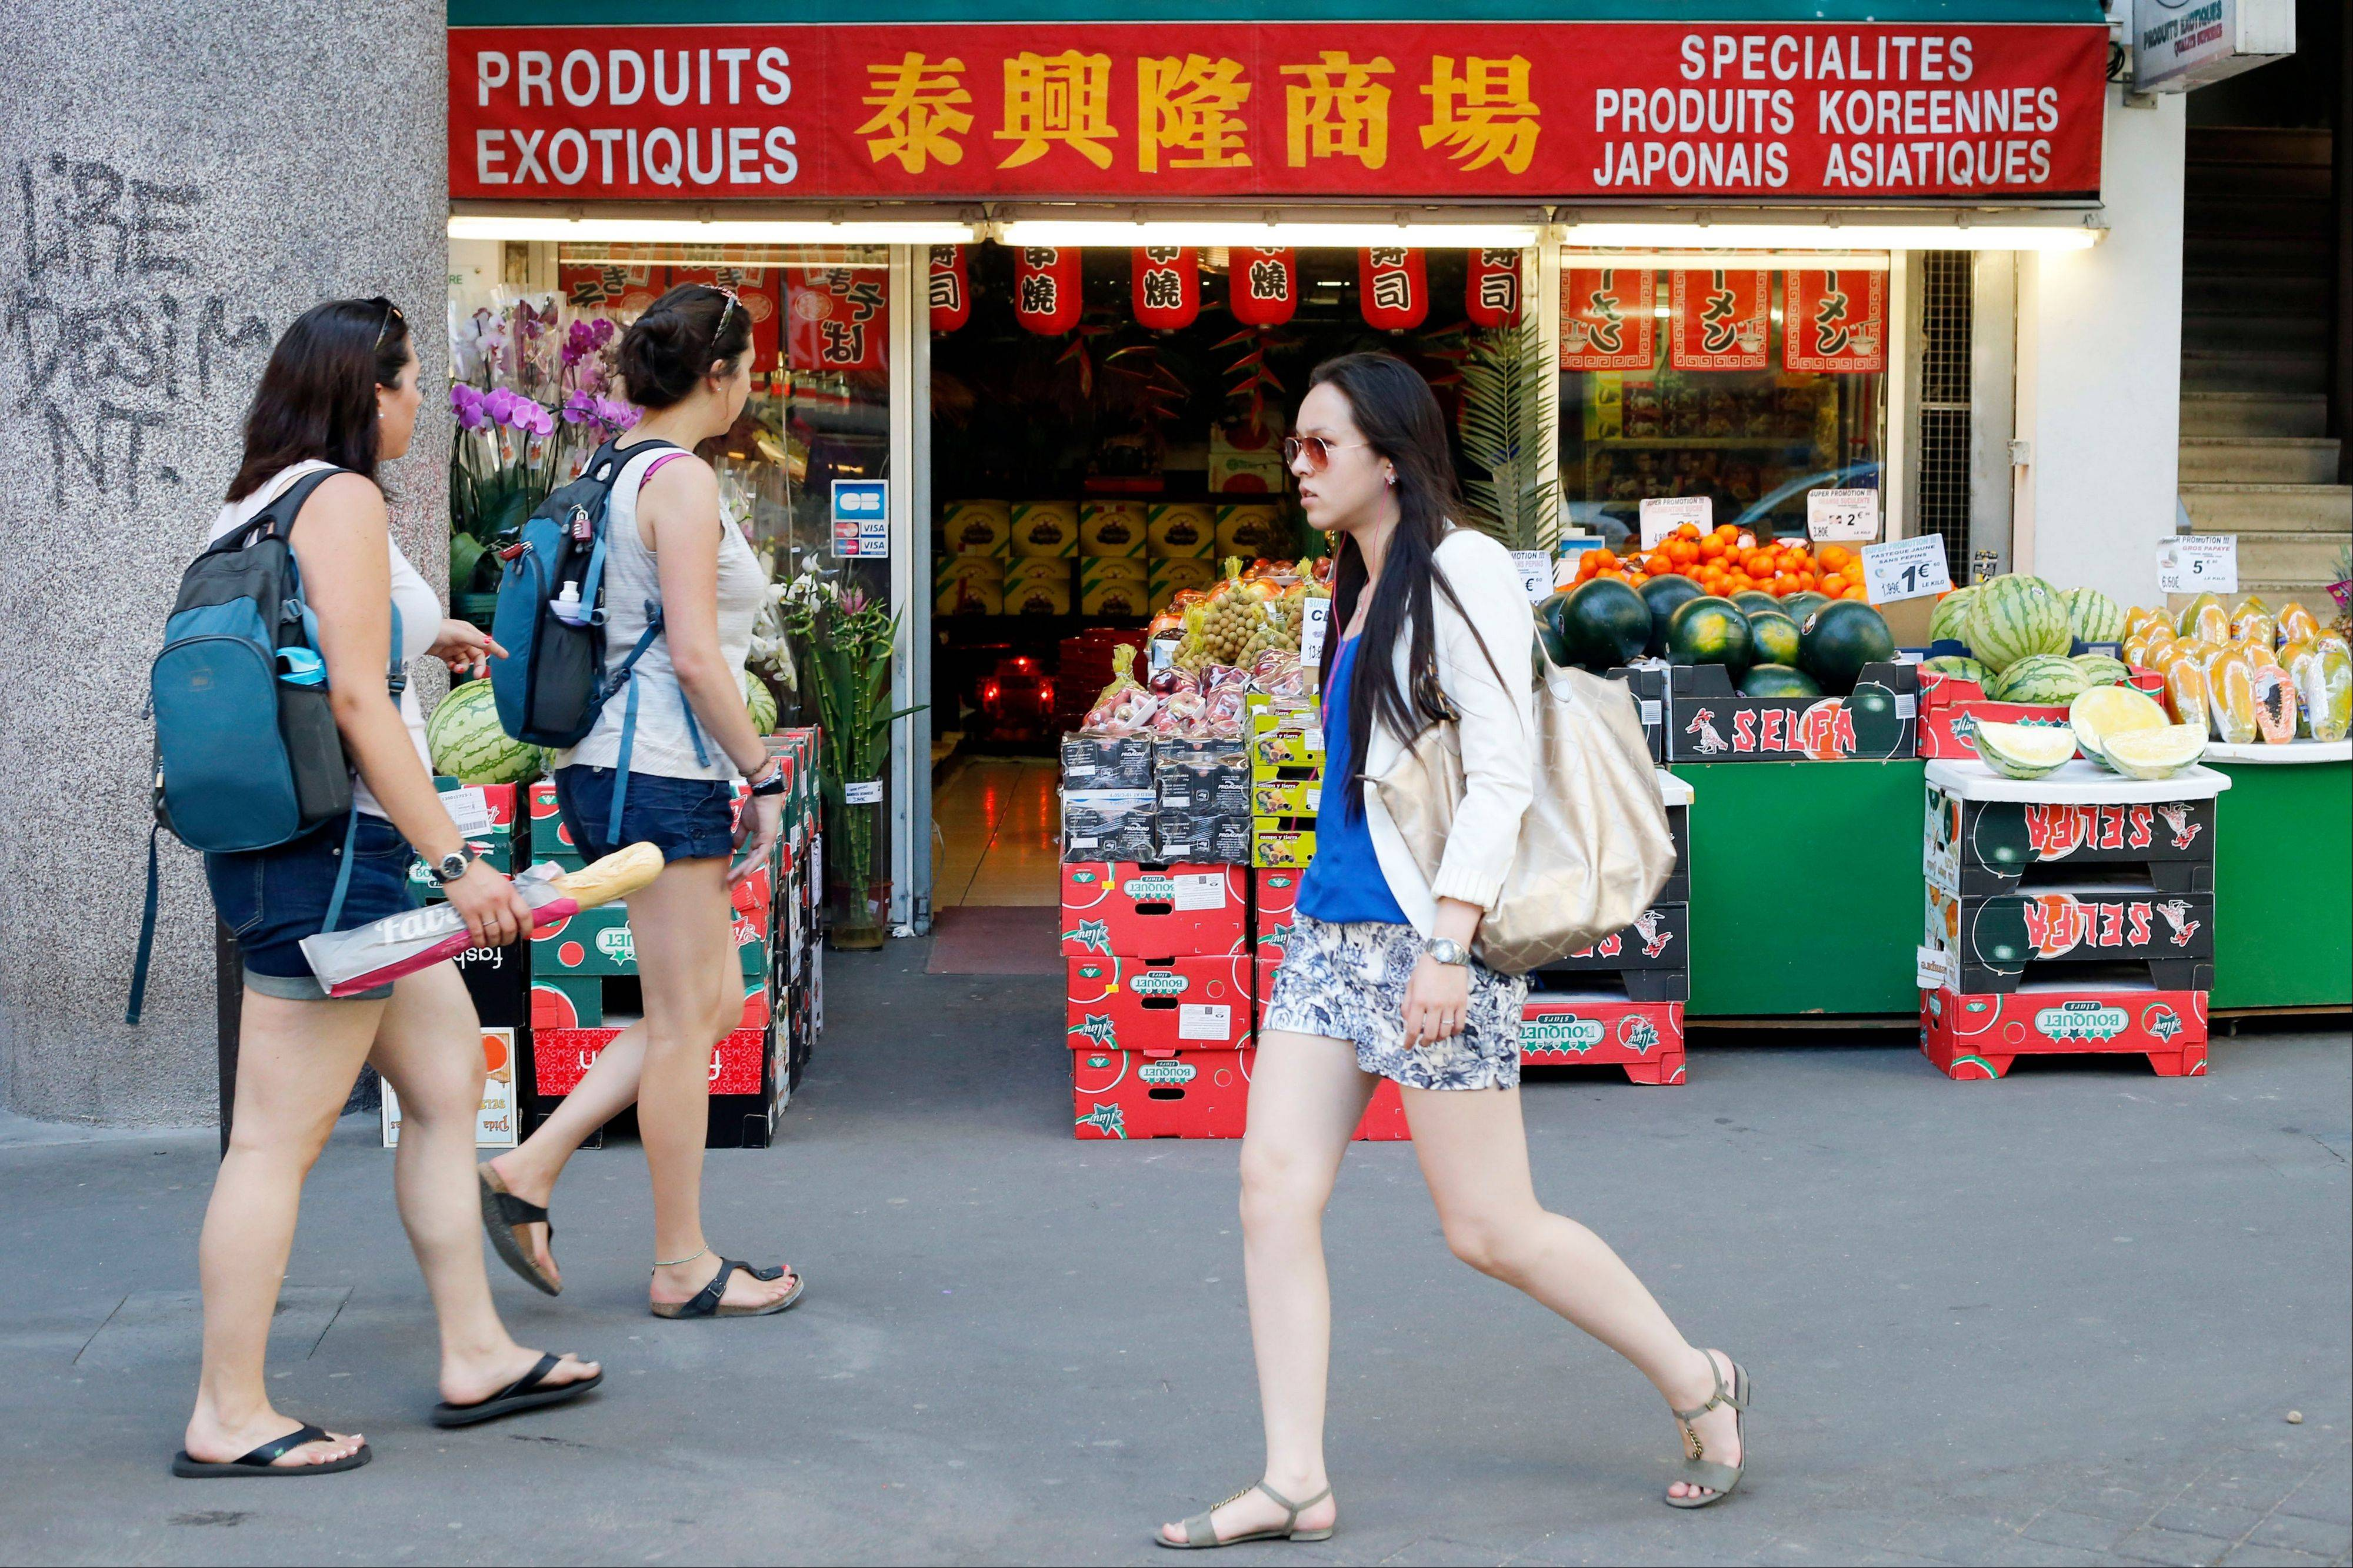 Tourists at left, walk front of a shop at the Chinese quarter in the 13th district of Paris, the largest Chinatown in Europe.